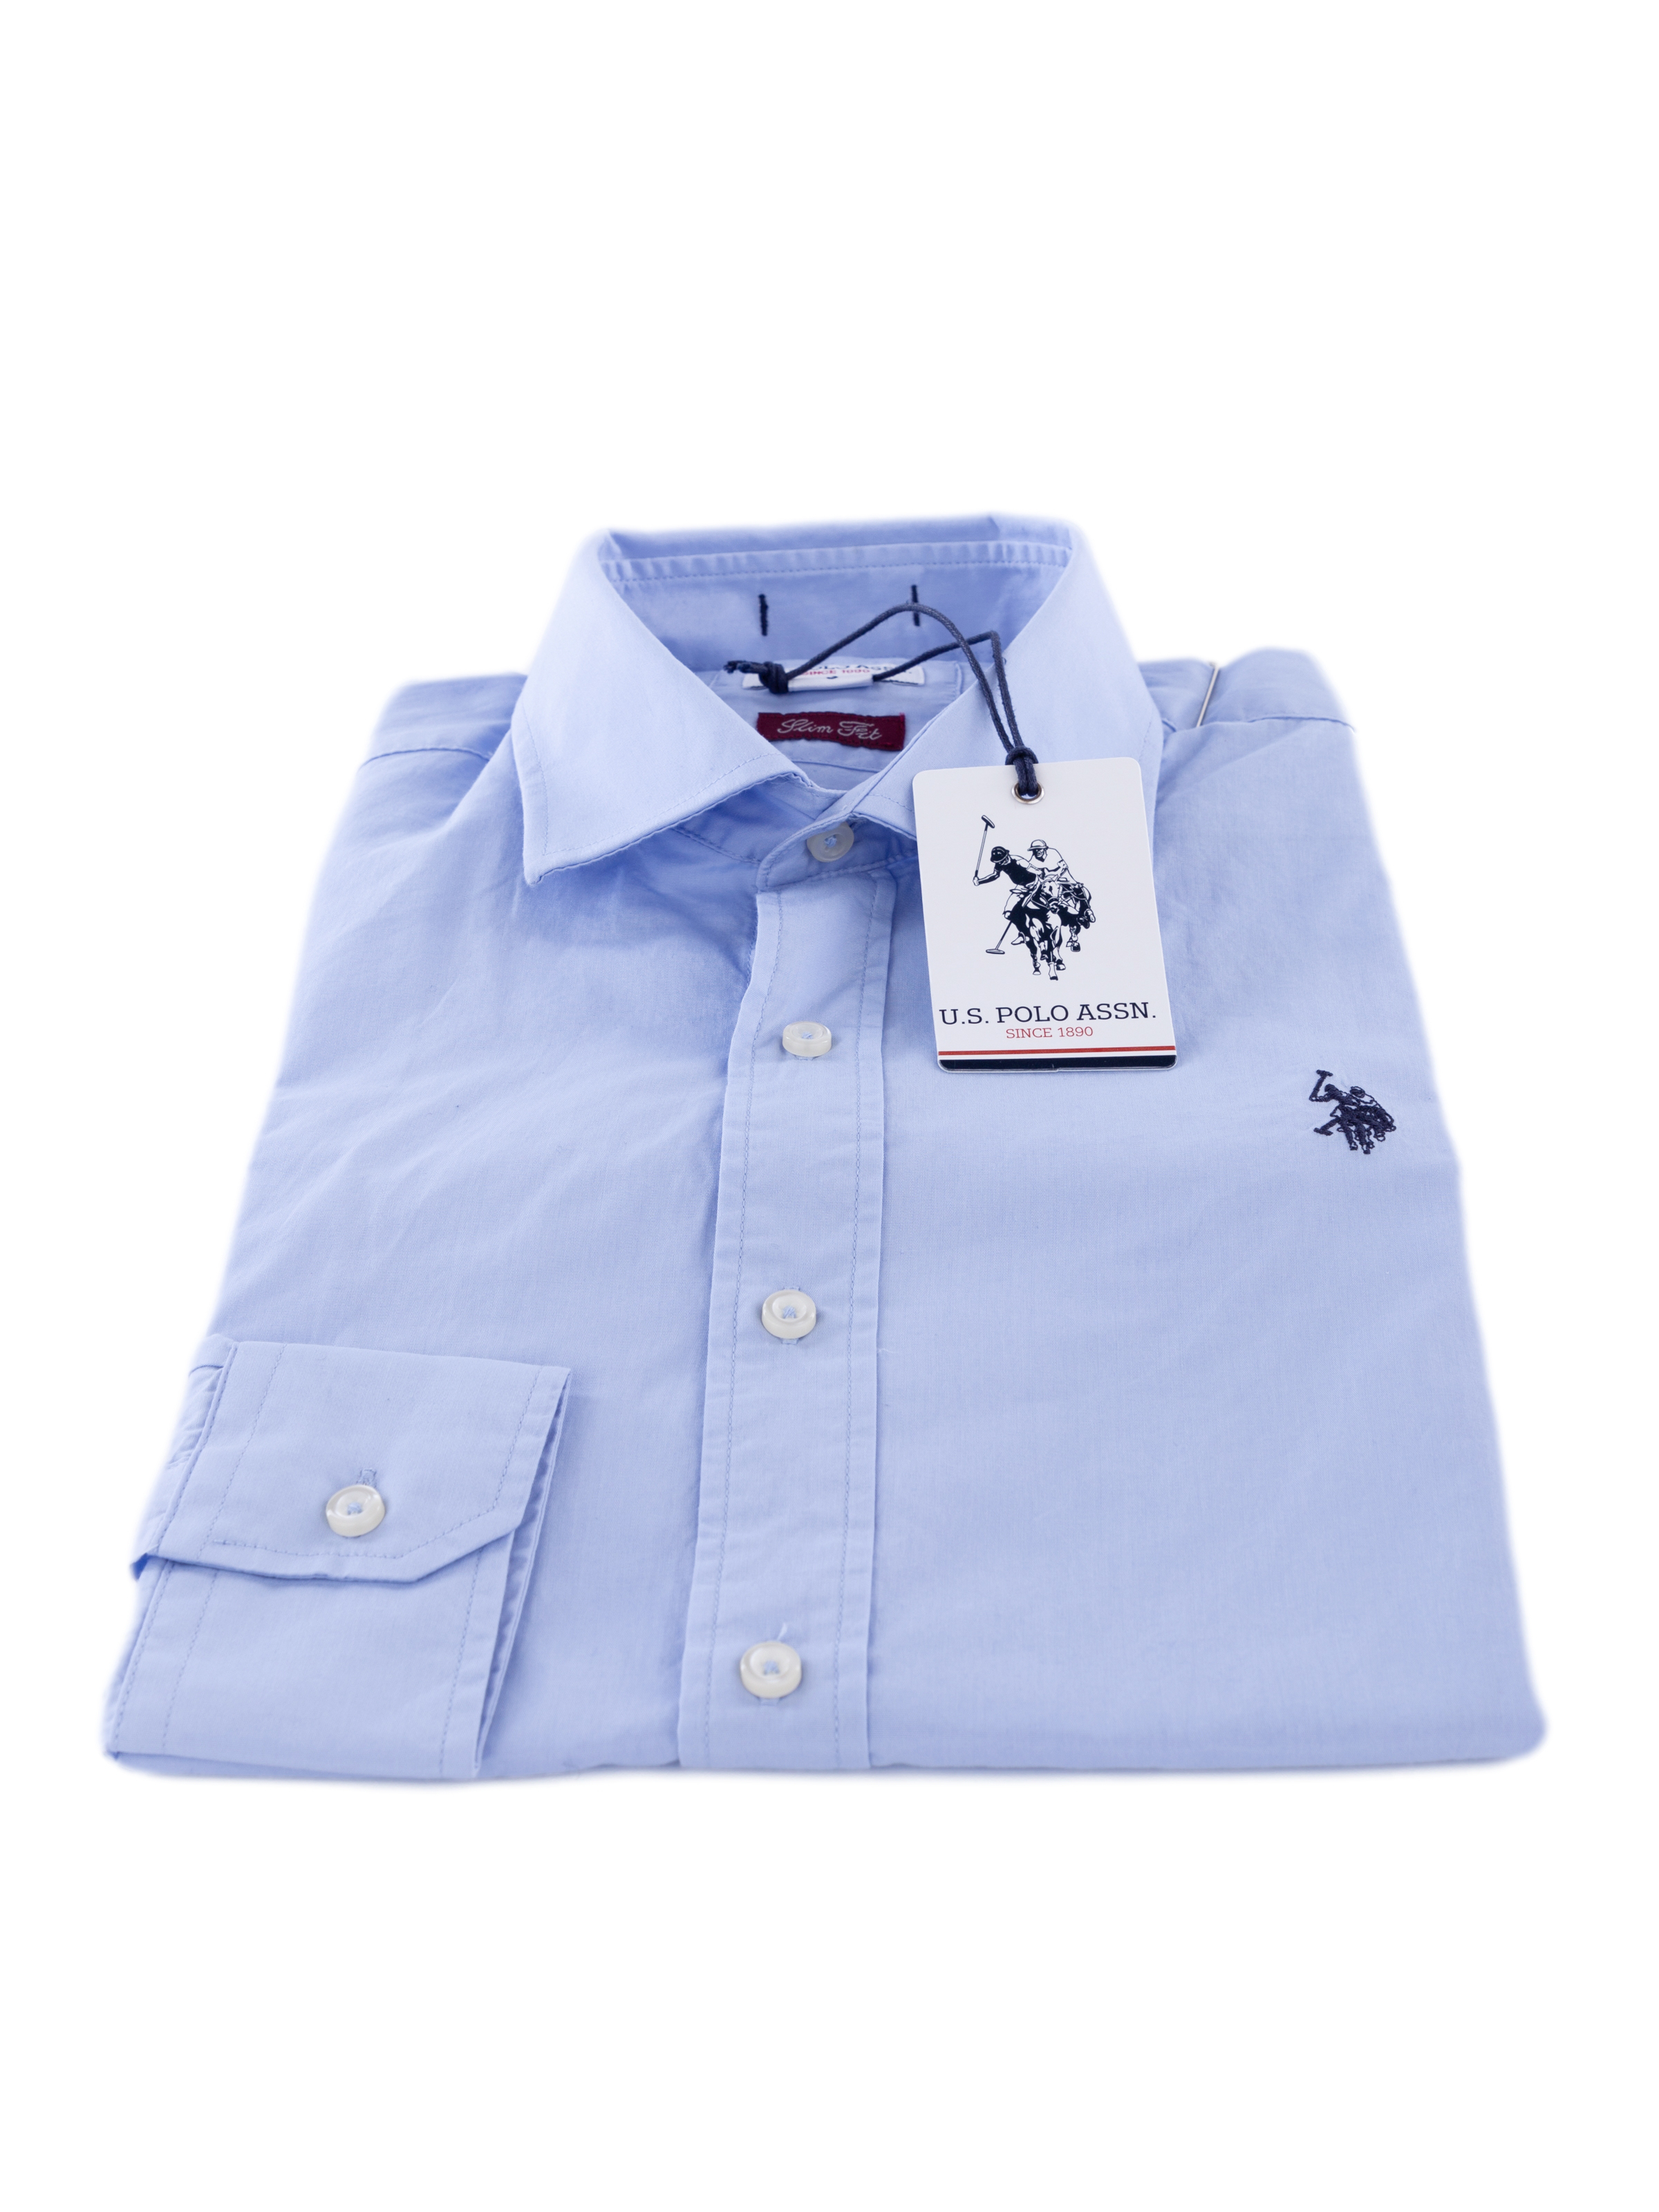 U.S.Polo Assn. Jaxon Shirt SF-FC 58764 52112